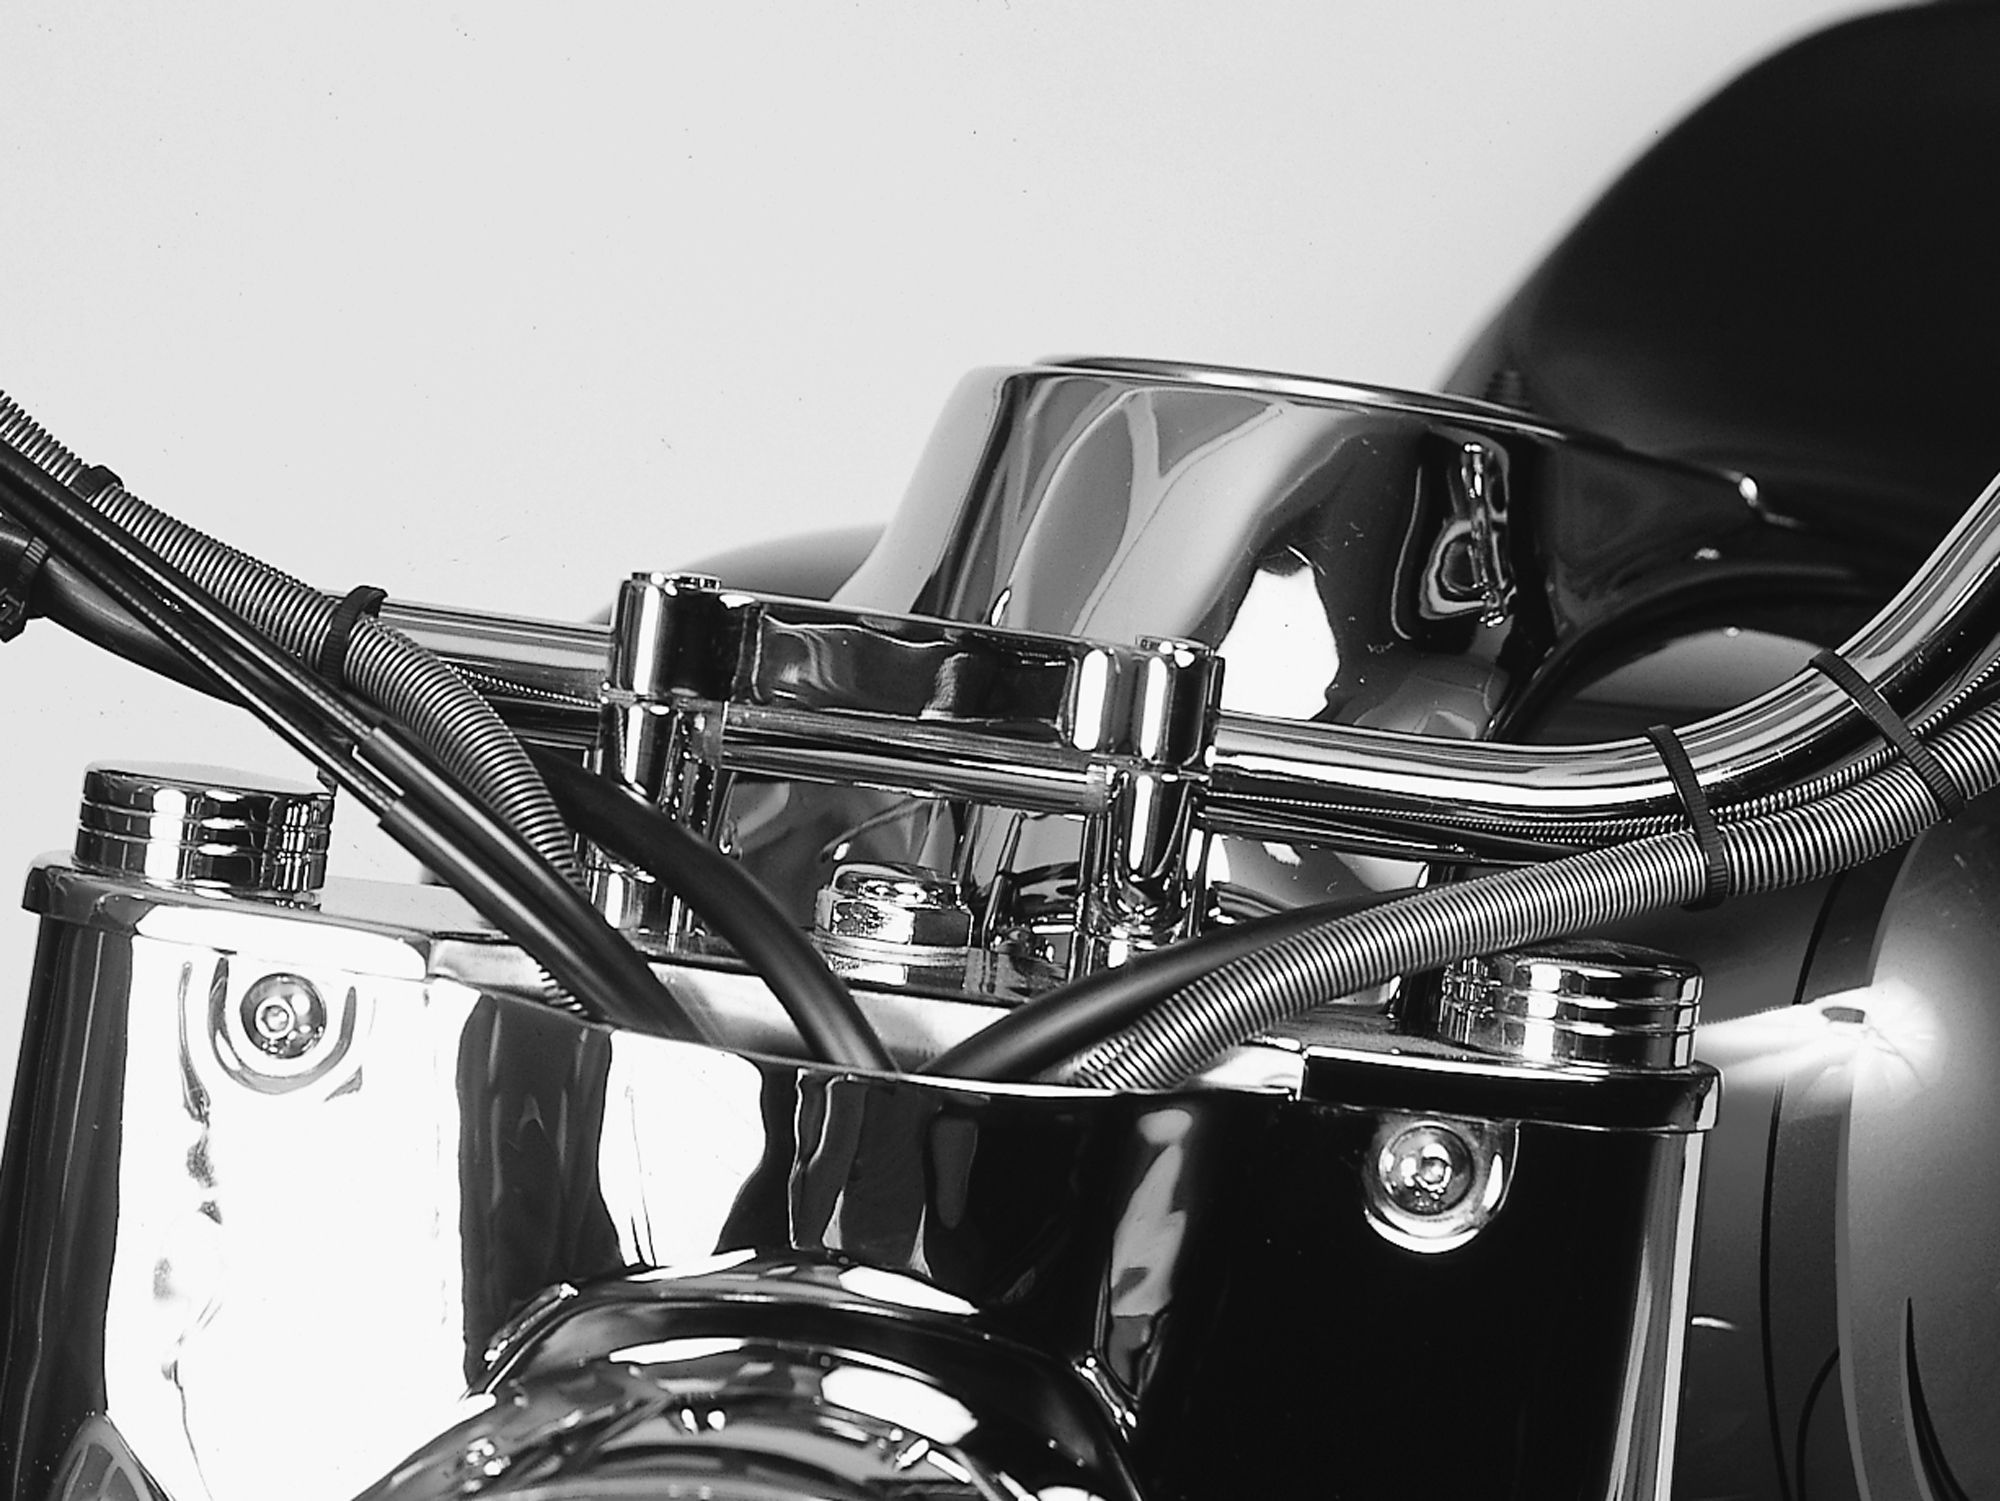 hight resolution of 2007 sportster wire harnes routing